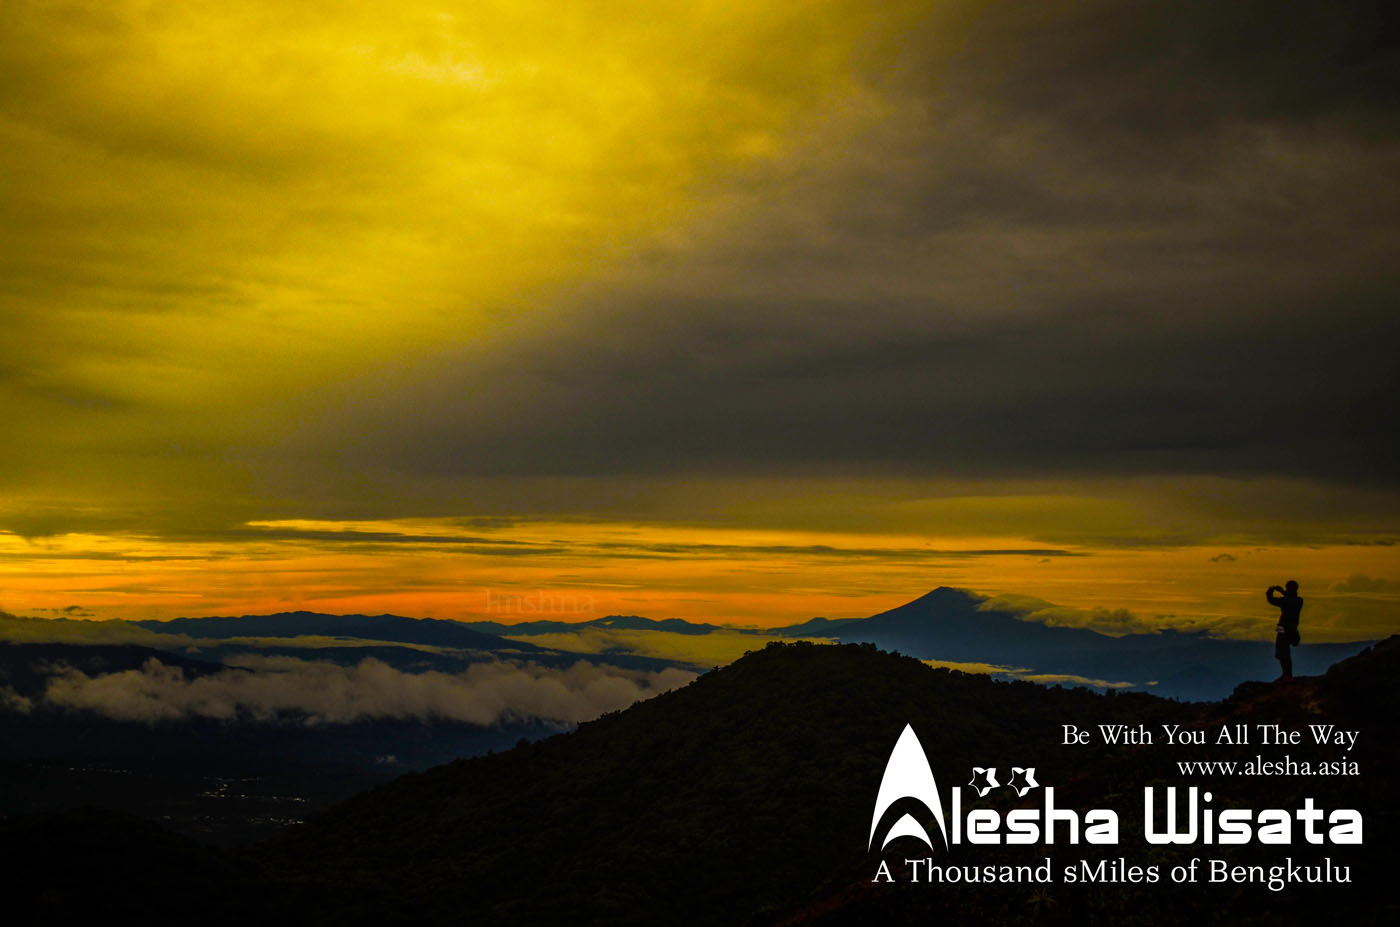 Alesha Wisata • Be with you all the way